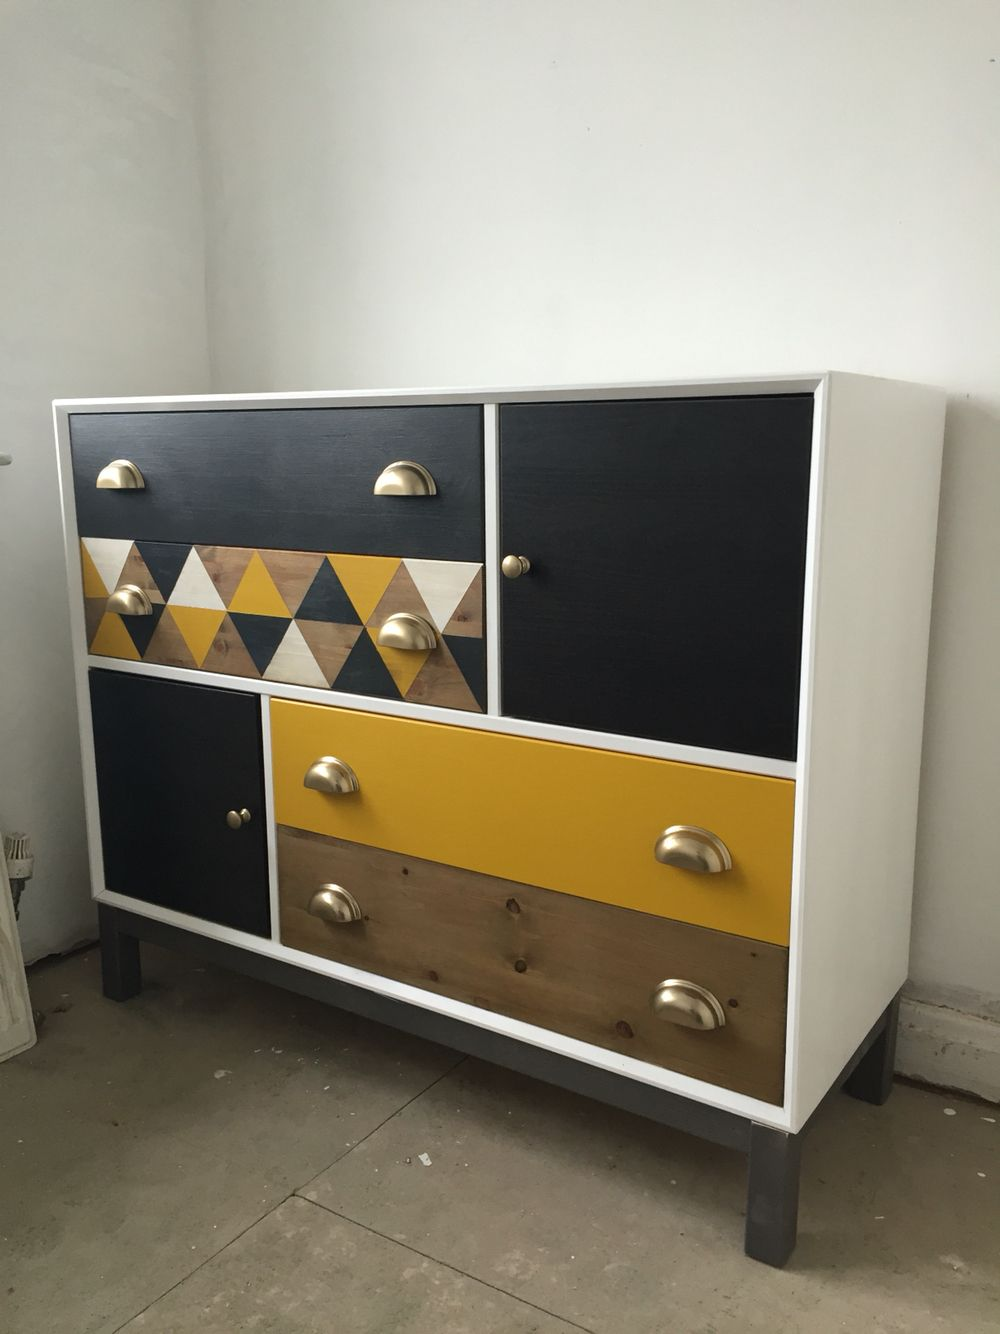 IKEA Nornas chest of drawers hack  yellow  grey  geometric. IKEA Nornas chest of drawers hack  yellow  grey  geometric